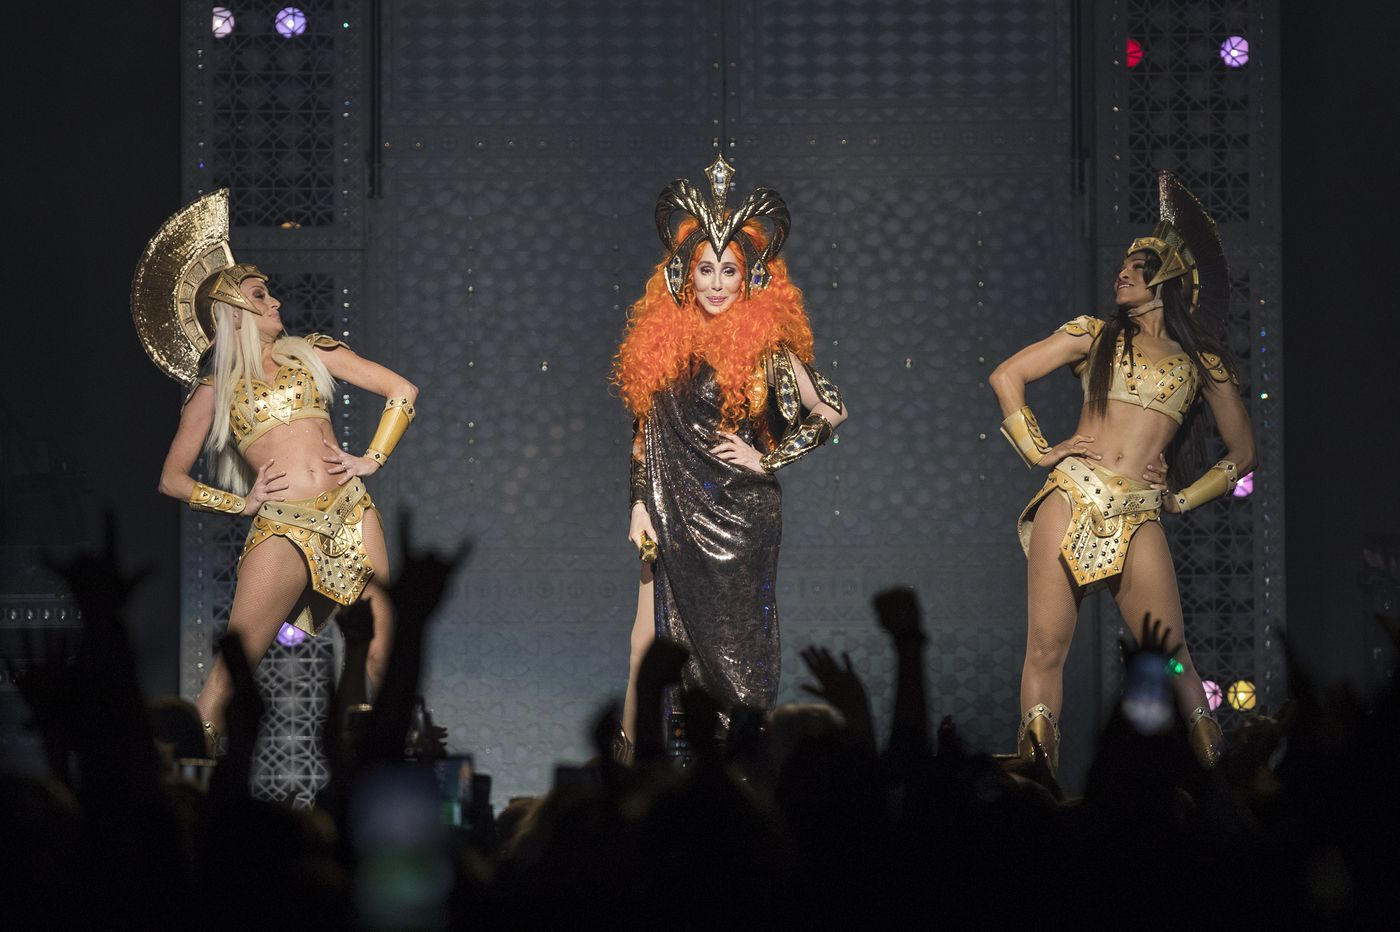 Review: Cher rides an elephant, makes a triumphant return at a sold-out Wells Fargo Center